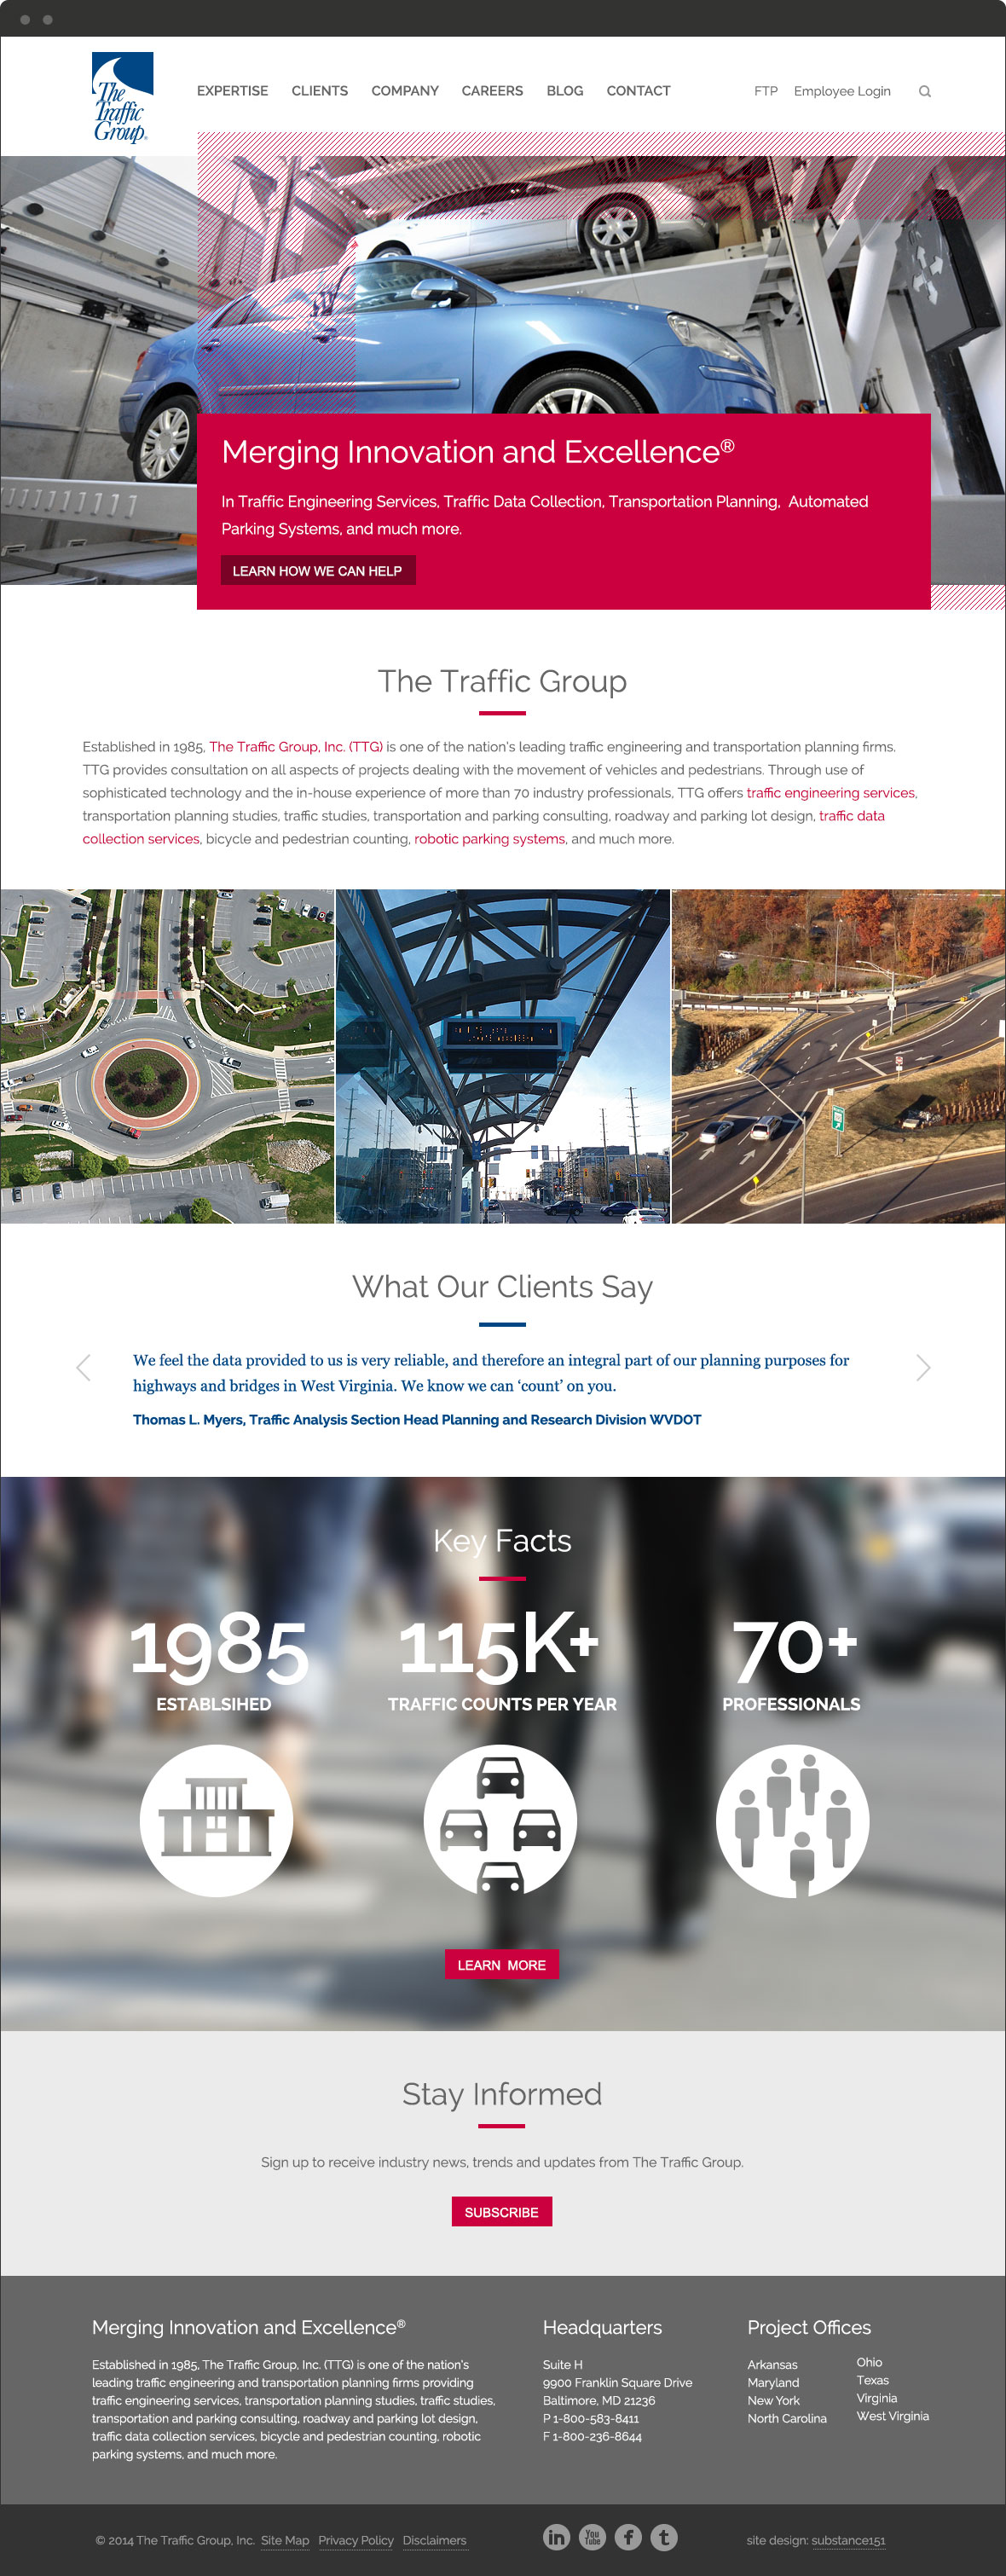 The Traffic Group Home Page